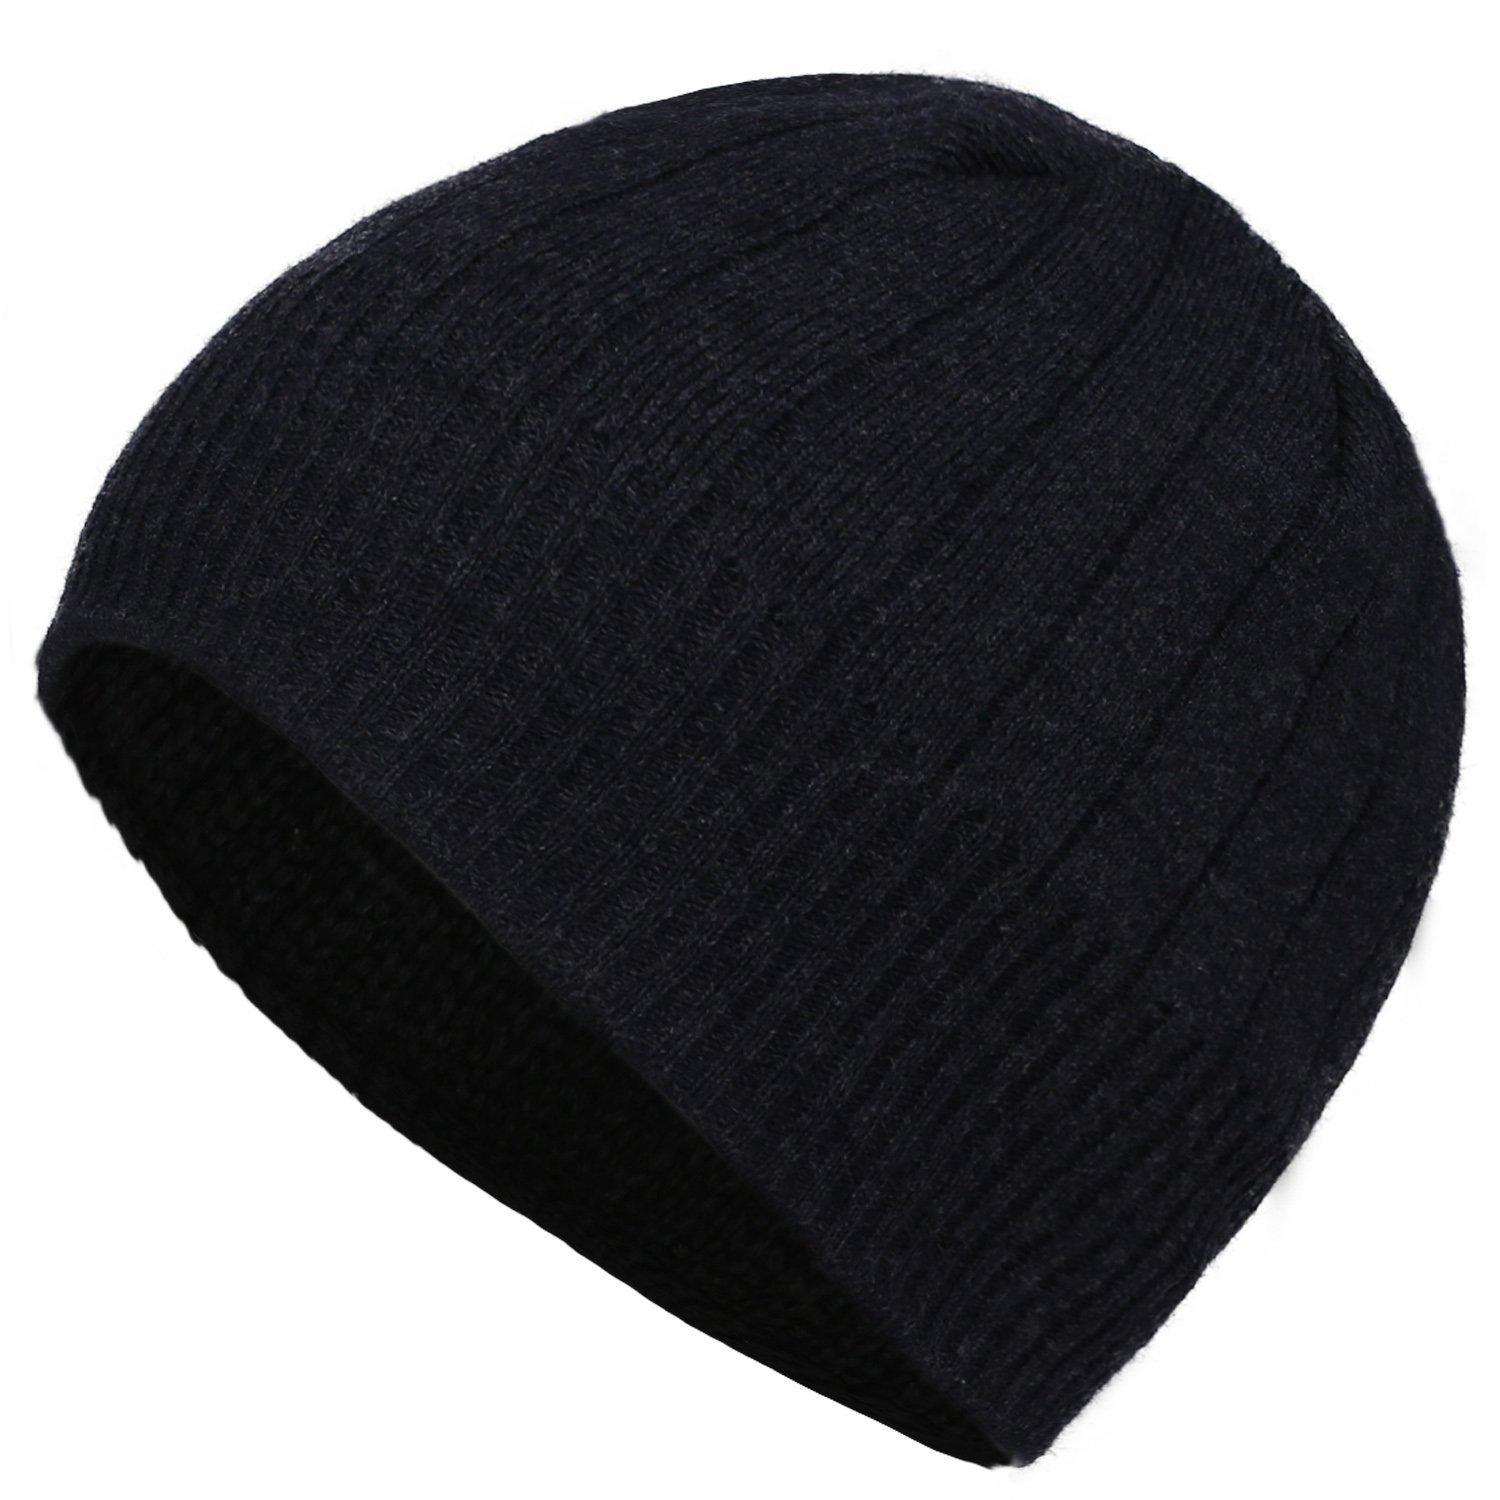 15ea303c317 ZPbliss Knit Winter Beanie Hat With Face Cover - Electric Socks